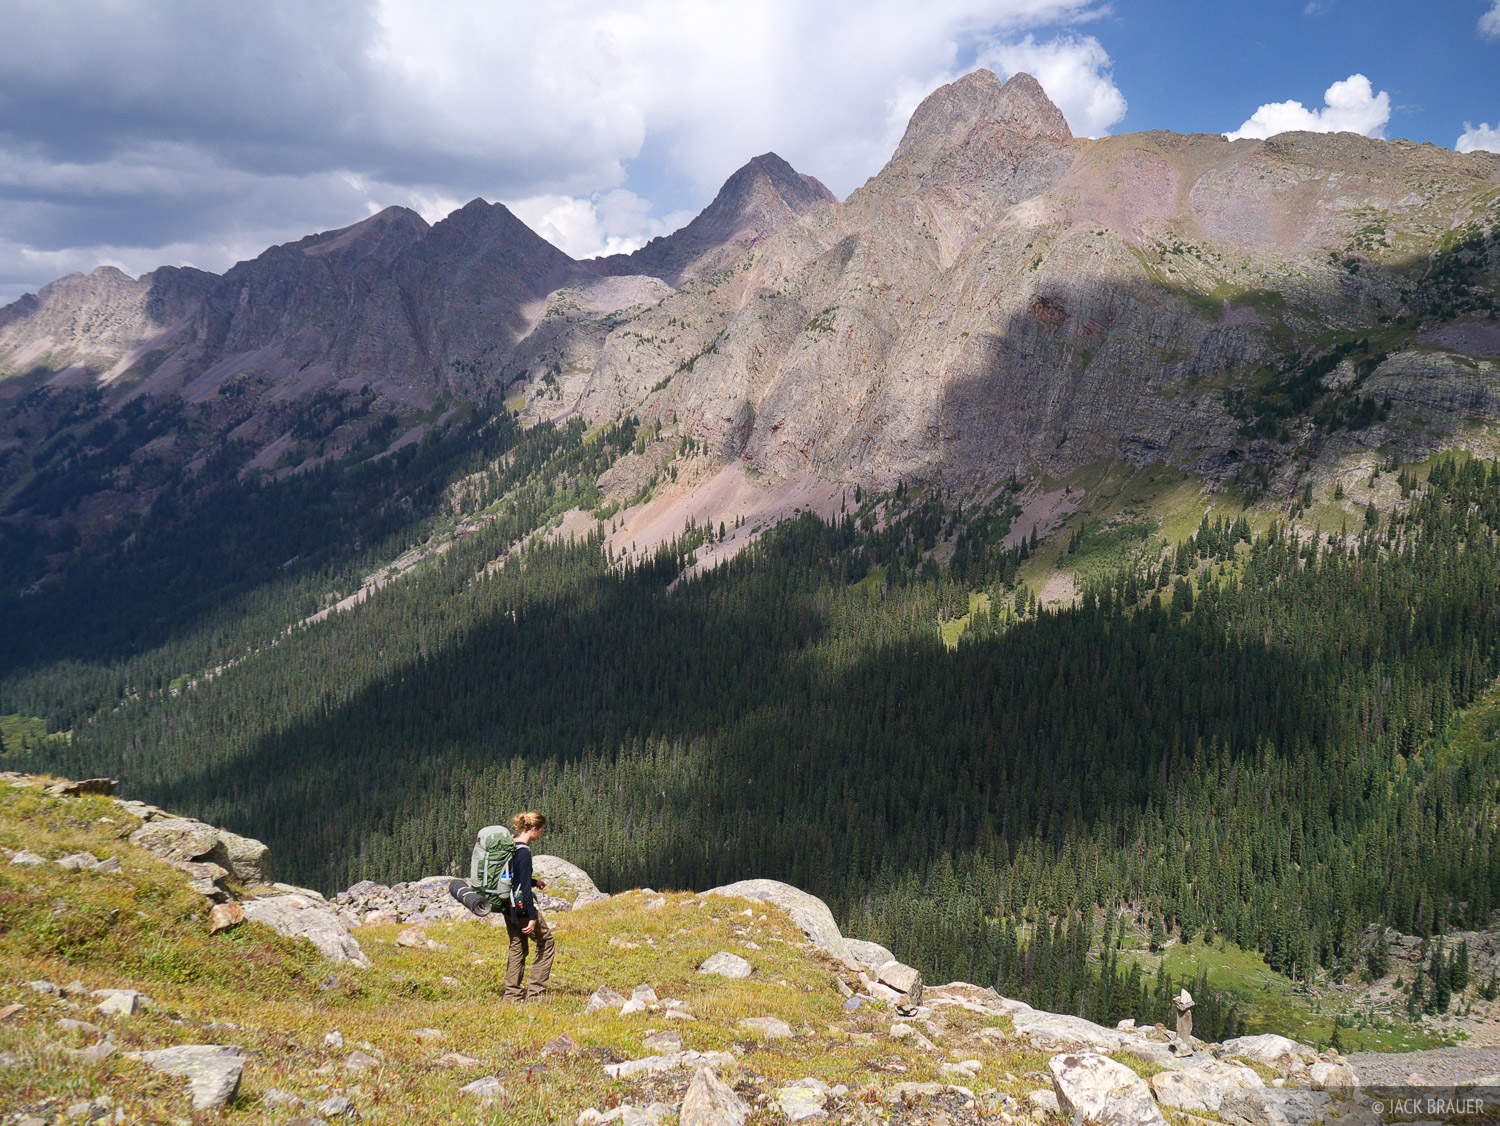 Backpacking in the Weminuche Wilderness, with a dramatic backdrop of the Grenadier Range - Vestal Peak (13844 ft.) is most prominent...